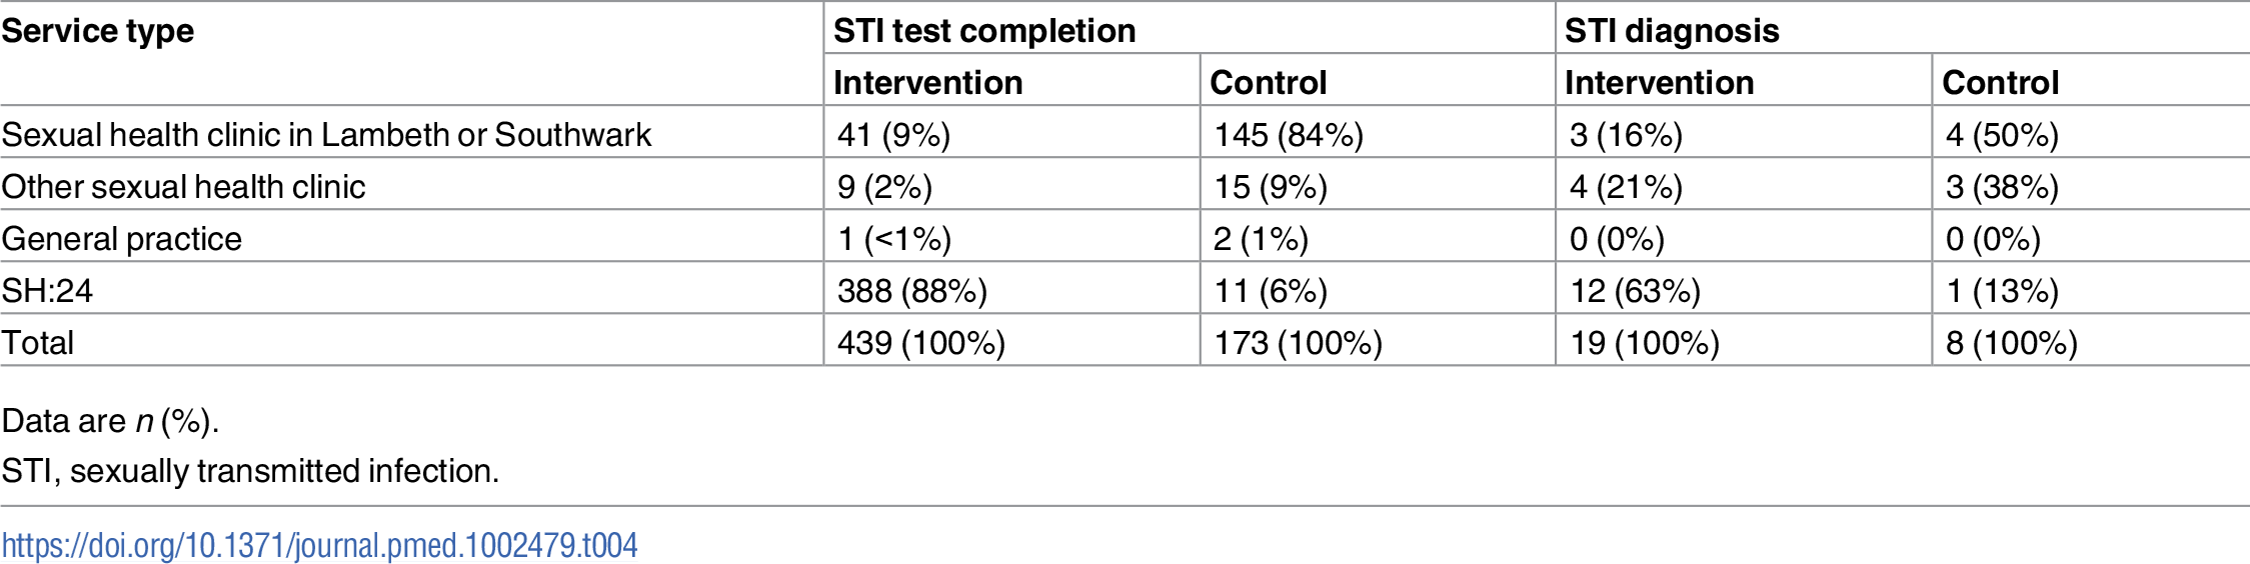 STI test completion and STI diagnoses by service type.